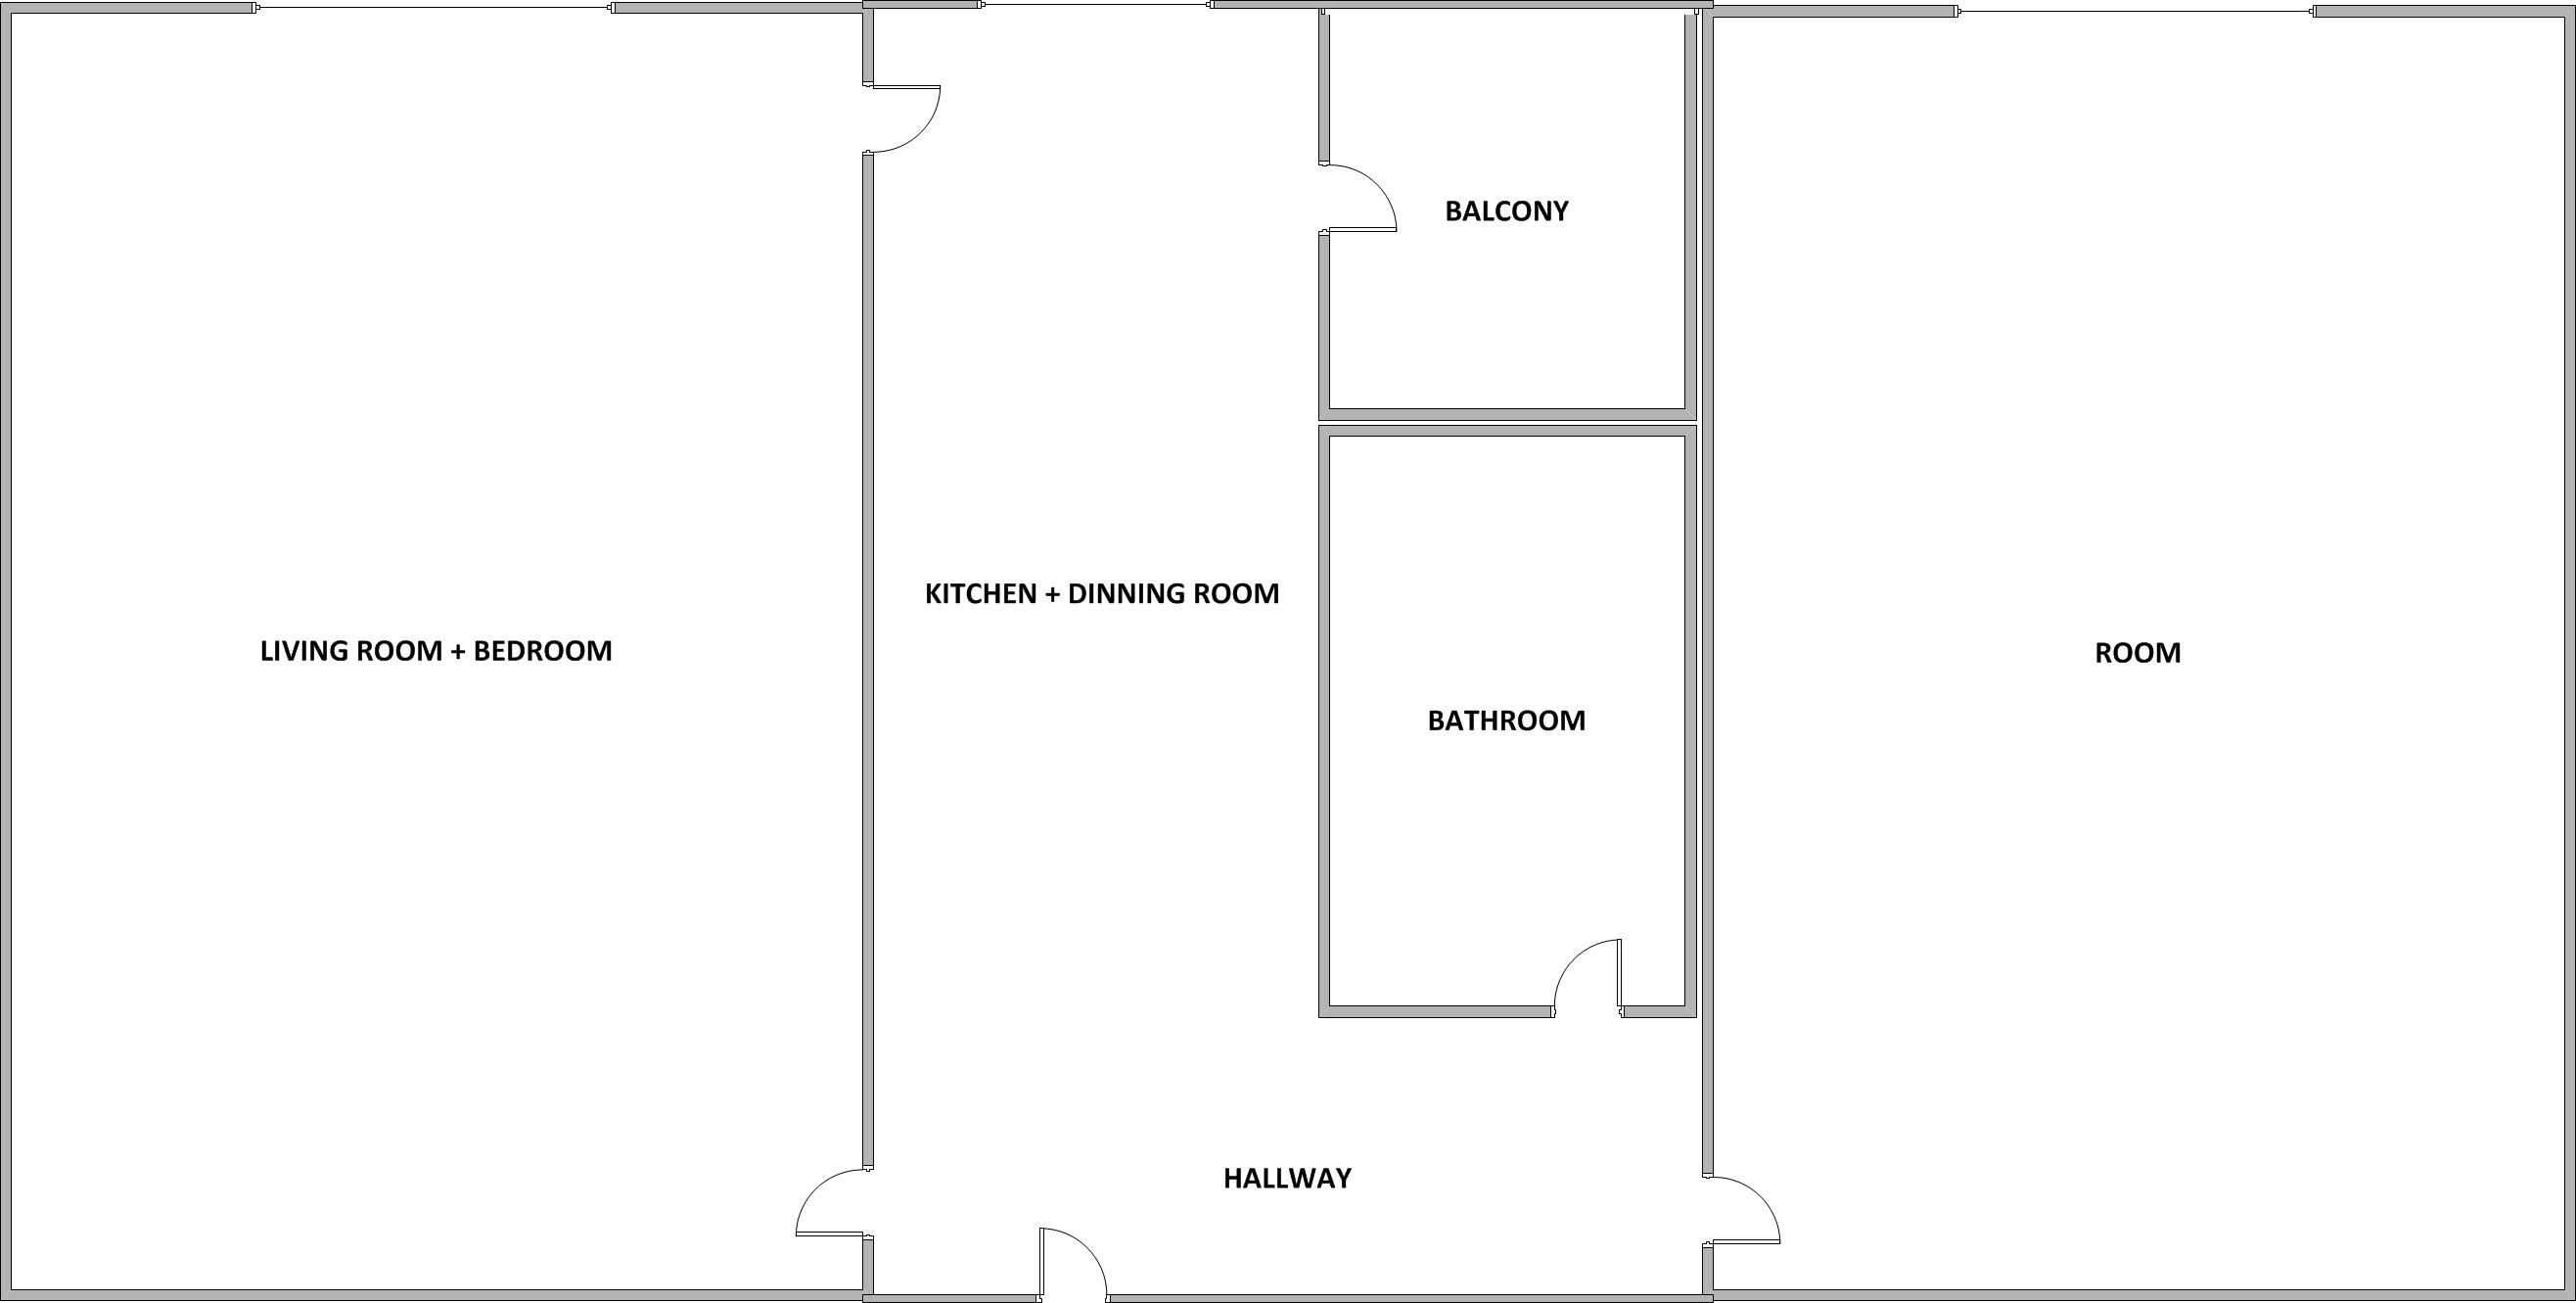 Combine Living Room And Bedroom Floor Plan Panel Curtains